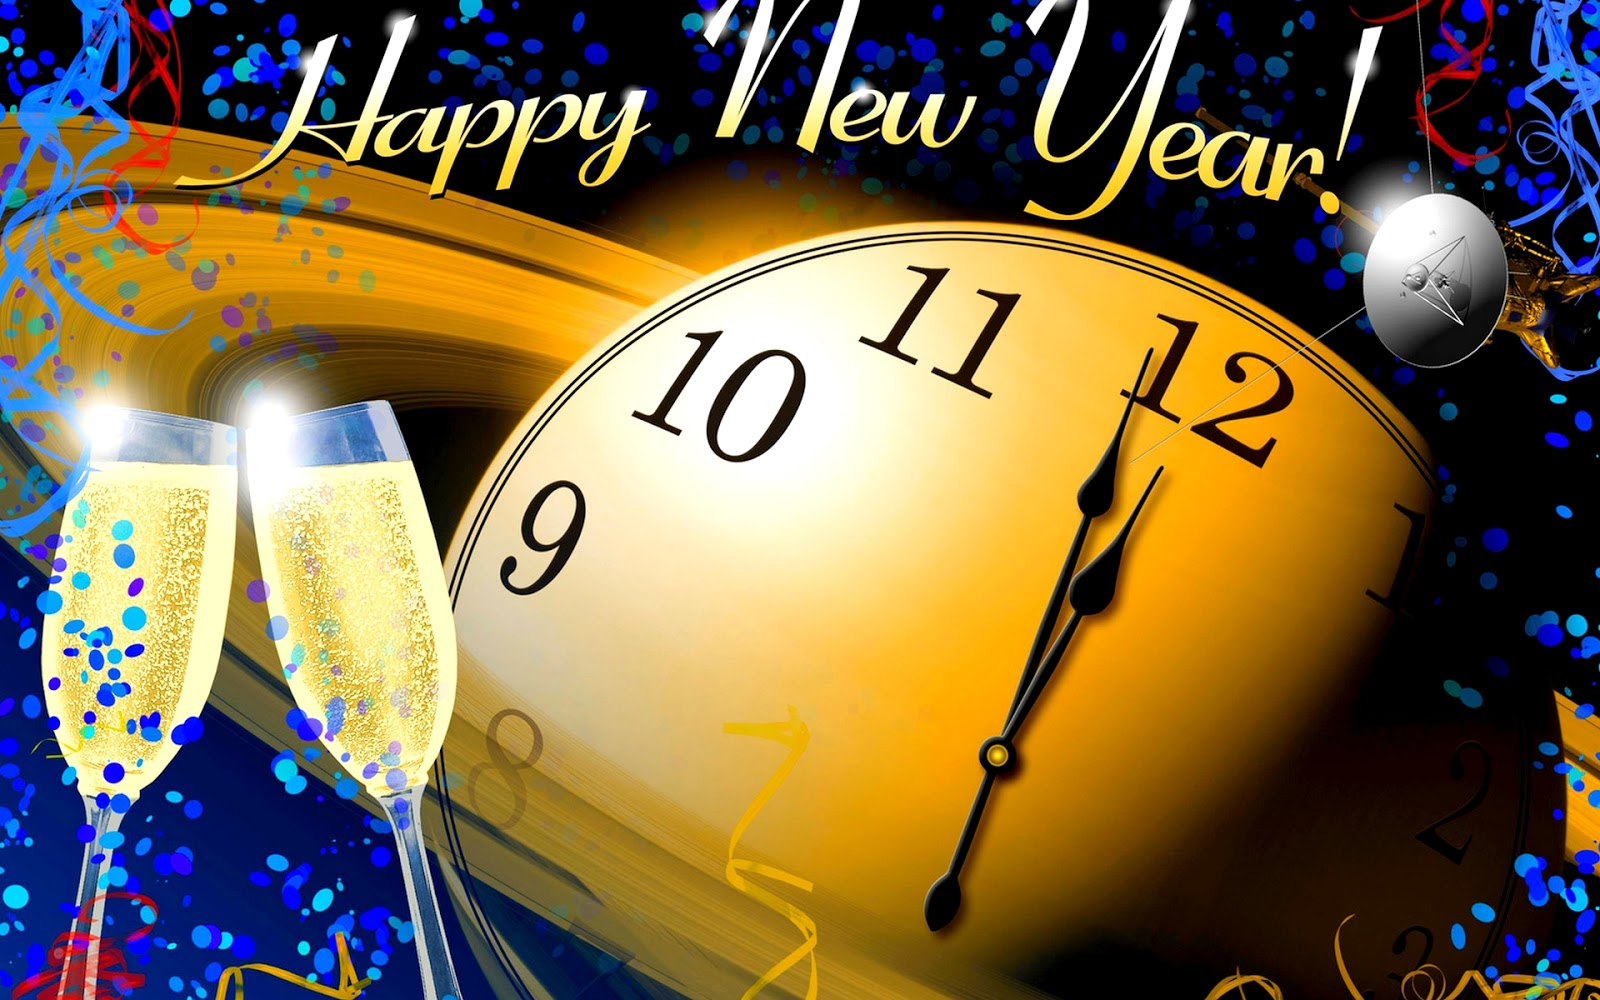 New Year Greetings Cards Cliparts Wishes Quotes Hot Images HD wallpapers 2018